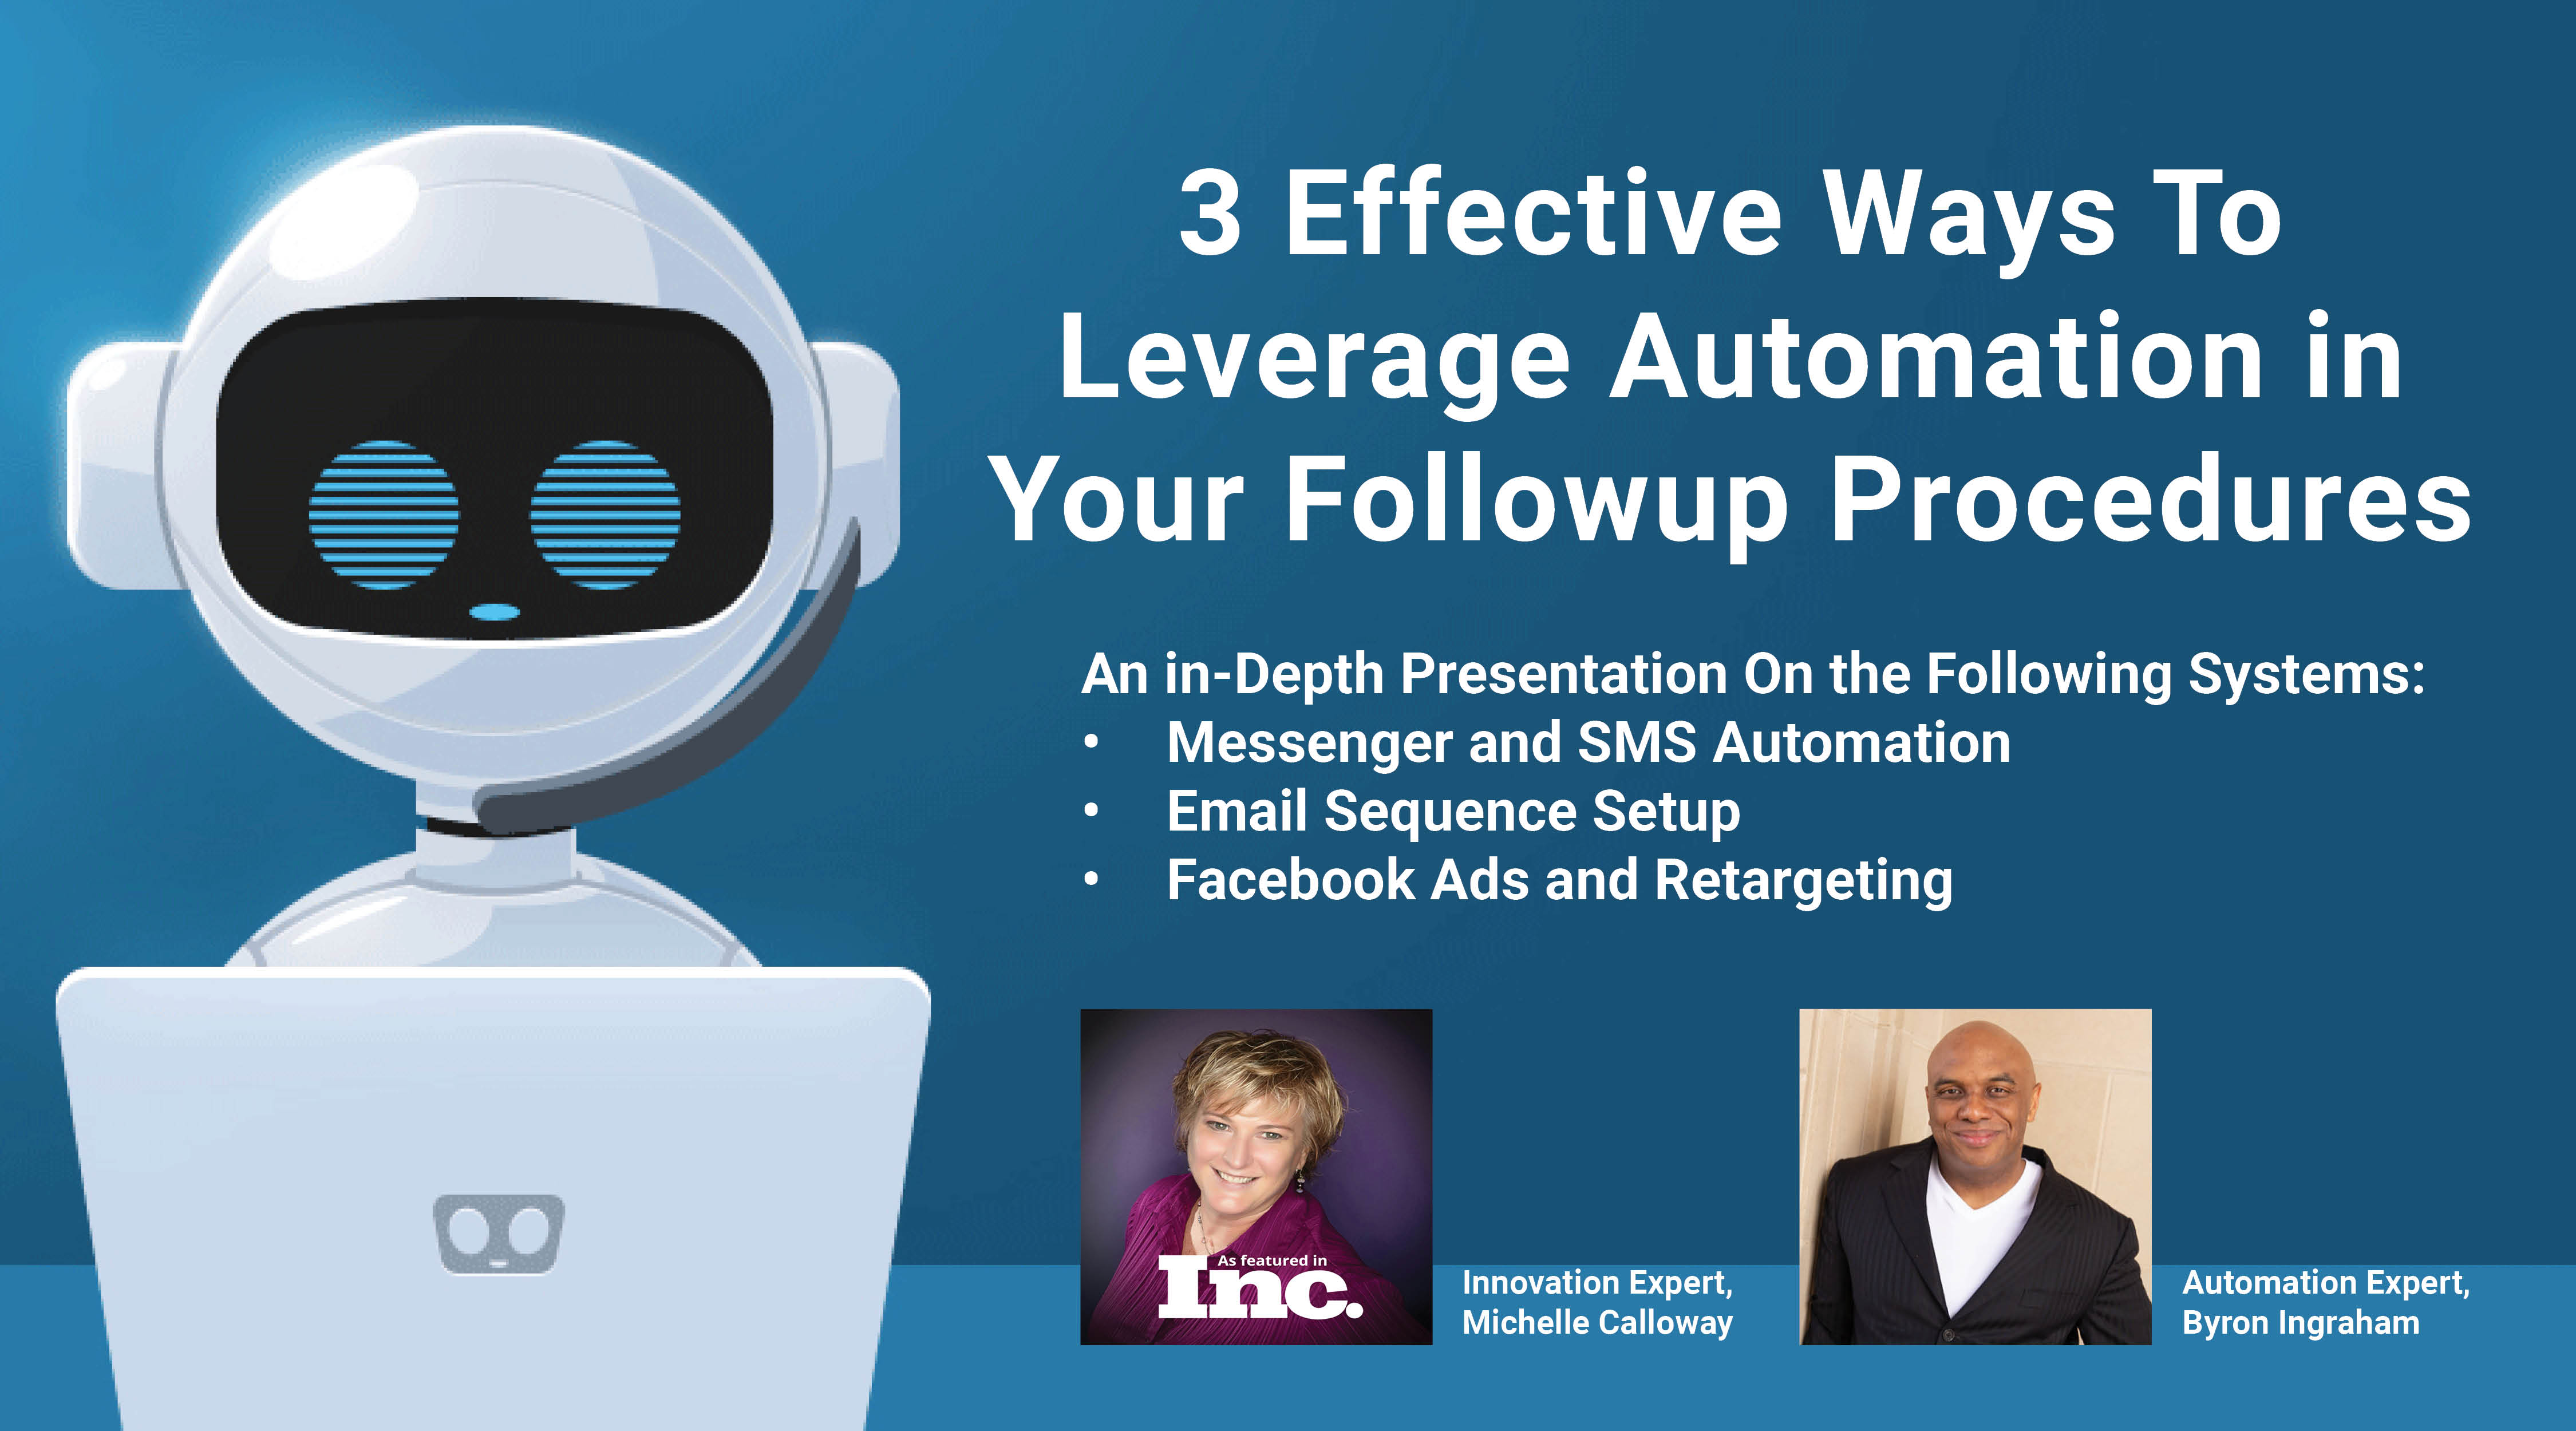 3 Effective Ways To Leverage Automation In Your Follow-Up Procedures